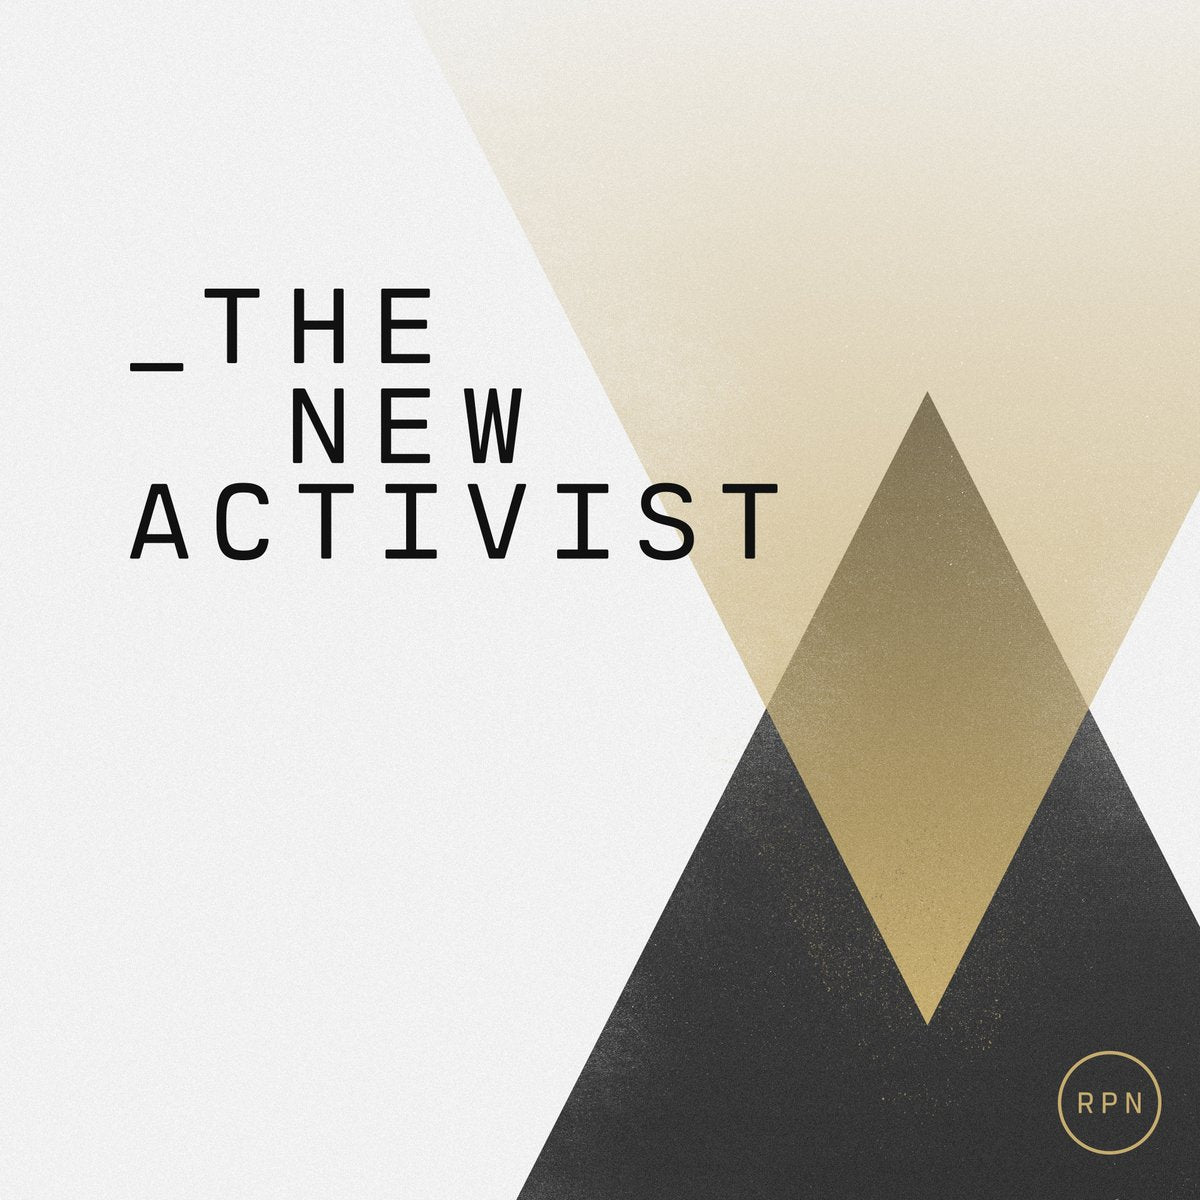 The New Activist Podcast